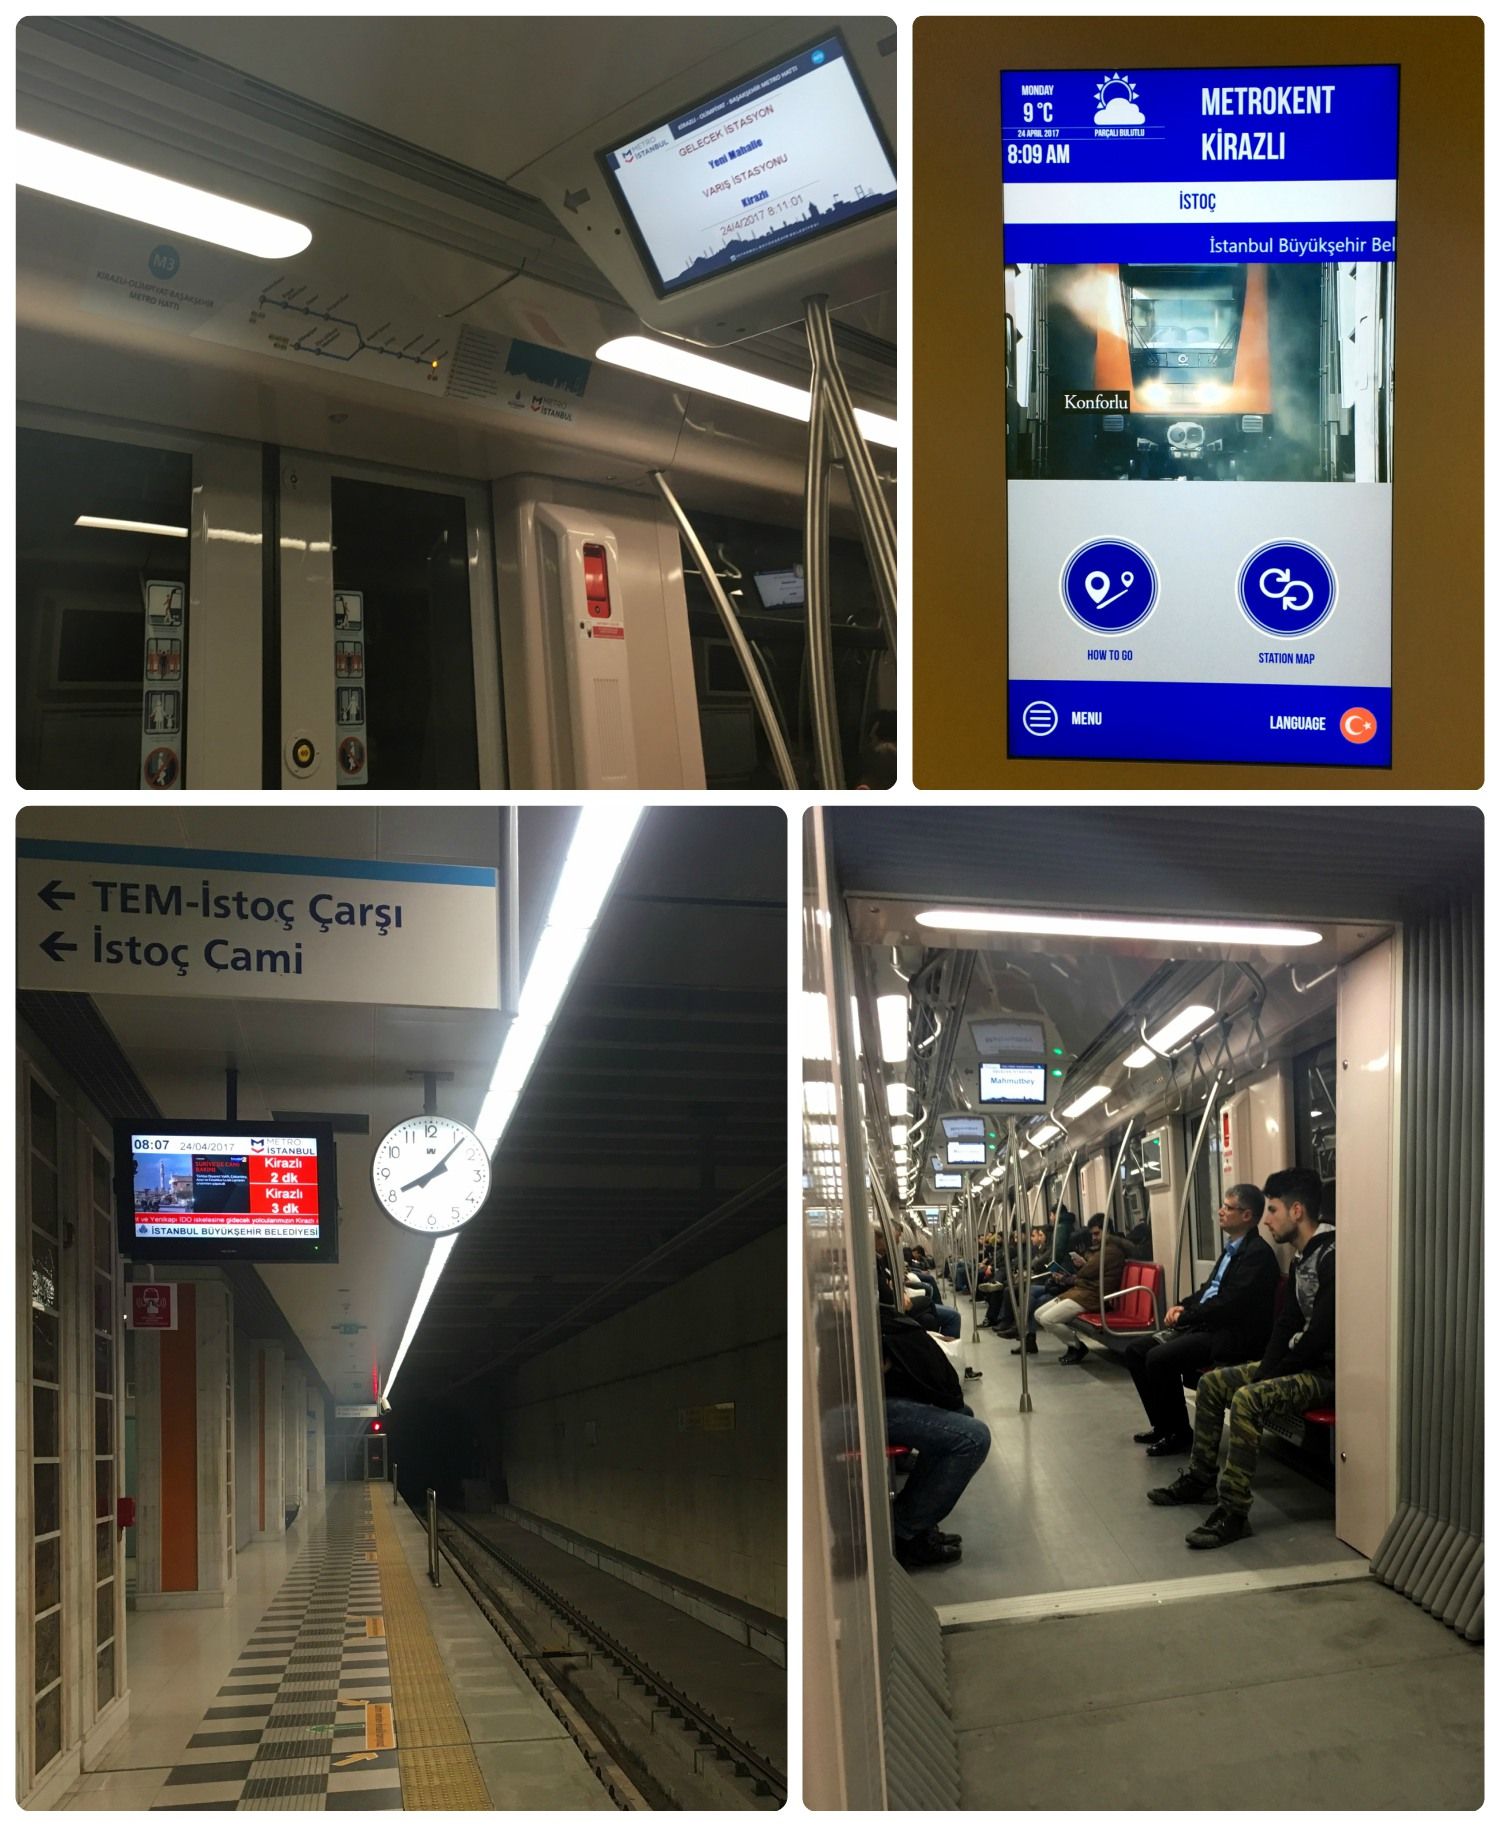 Clockwise (top): Digital sign with stop information on the metro, digital touch screen in the metro station with maps and directions, screen with next train arrival time, screens on-board the metro.